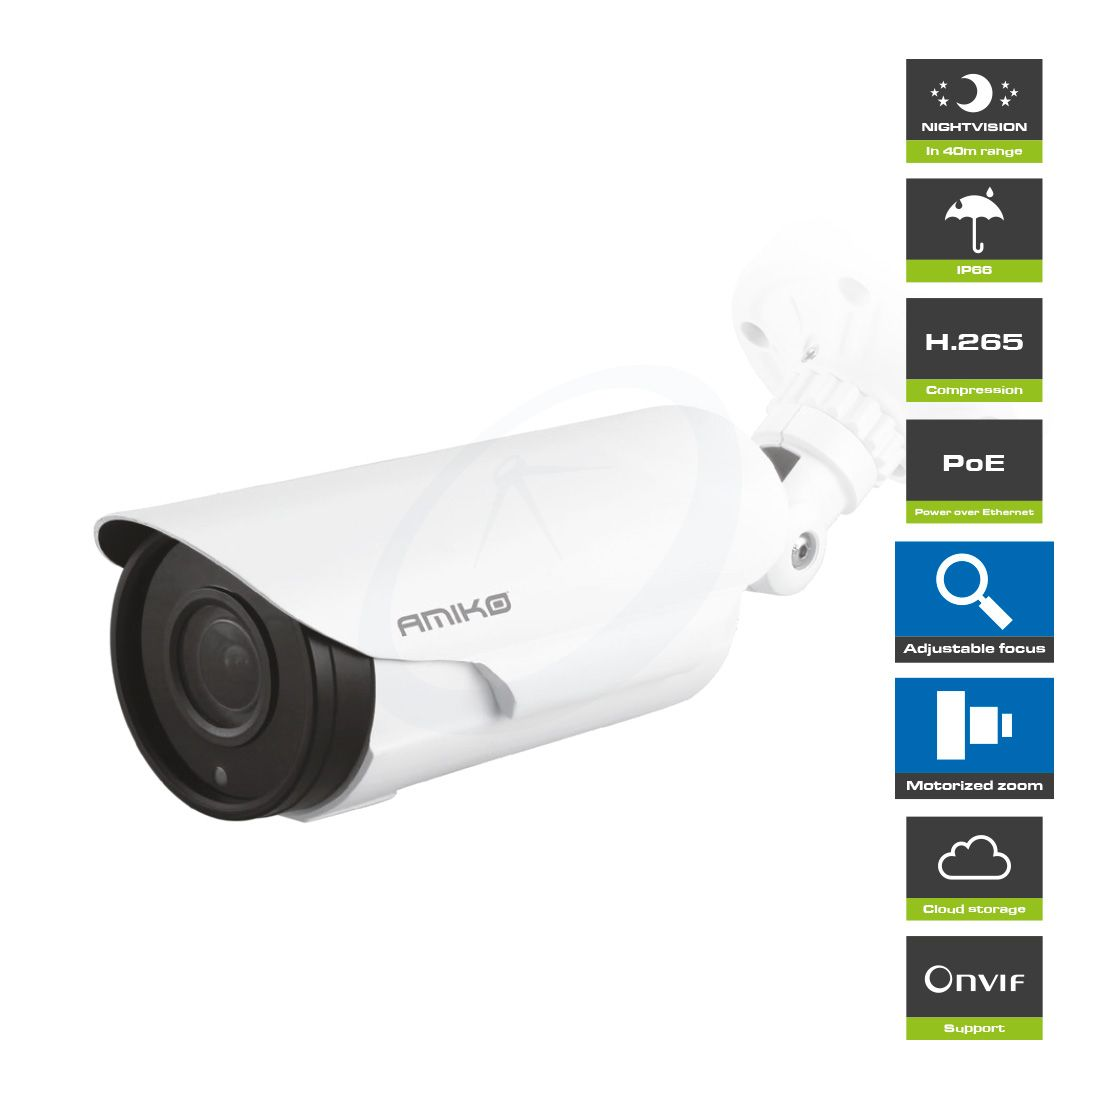 Amiko Home B40M500ZOOM POE - 5 MP - Full HD